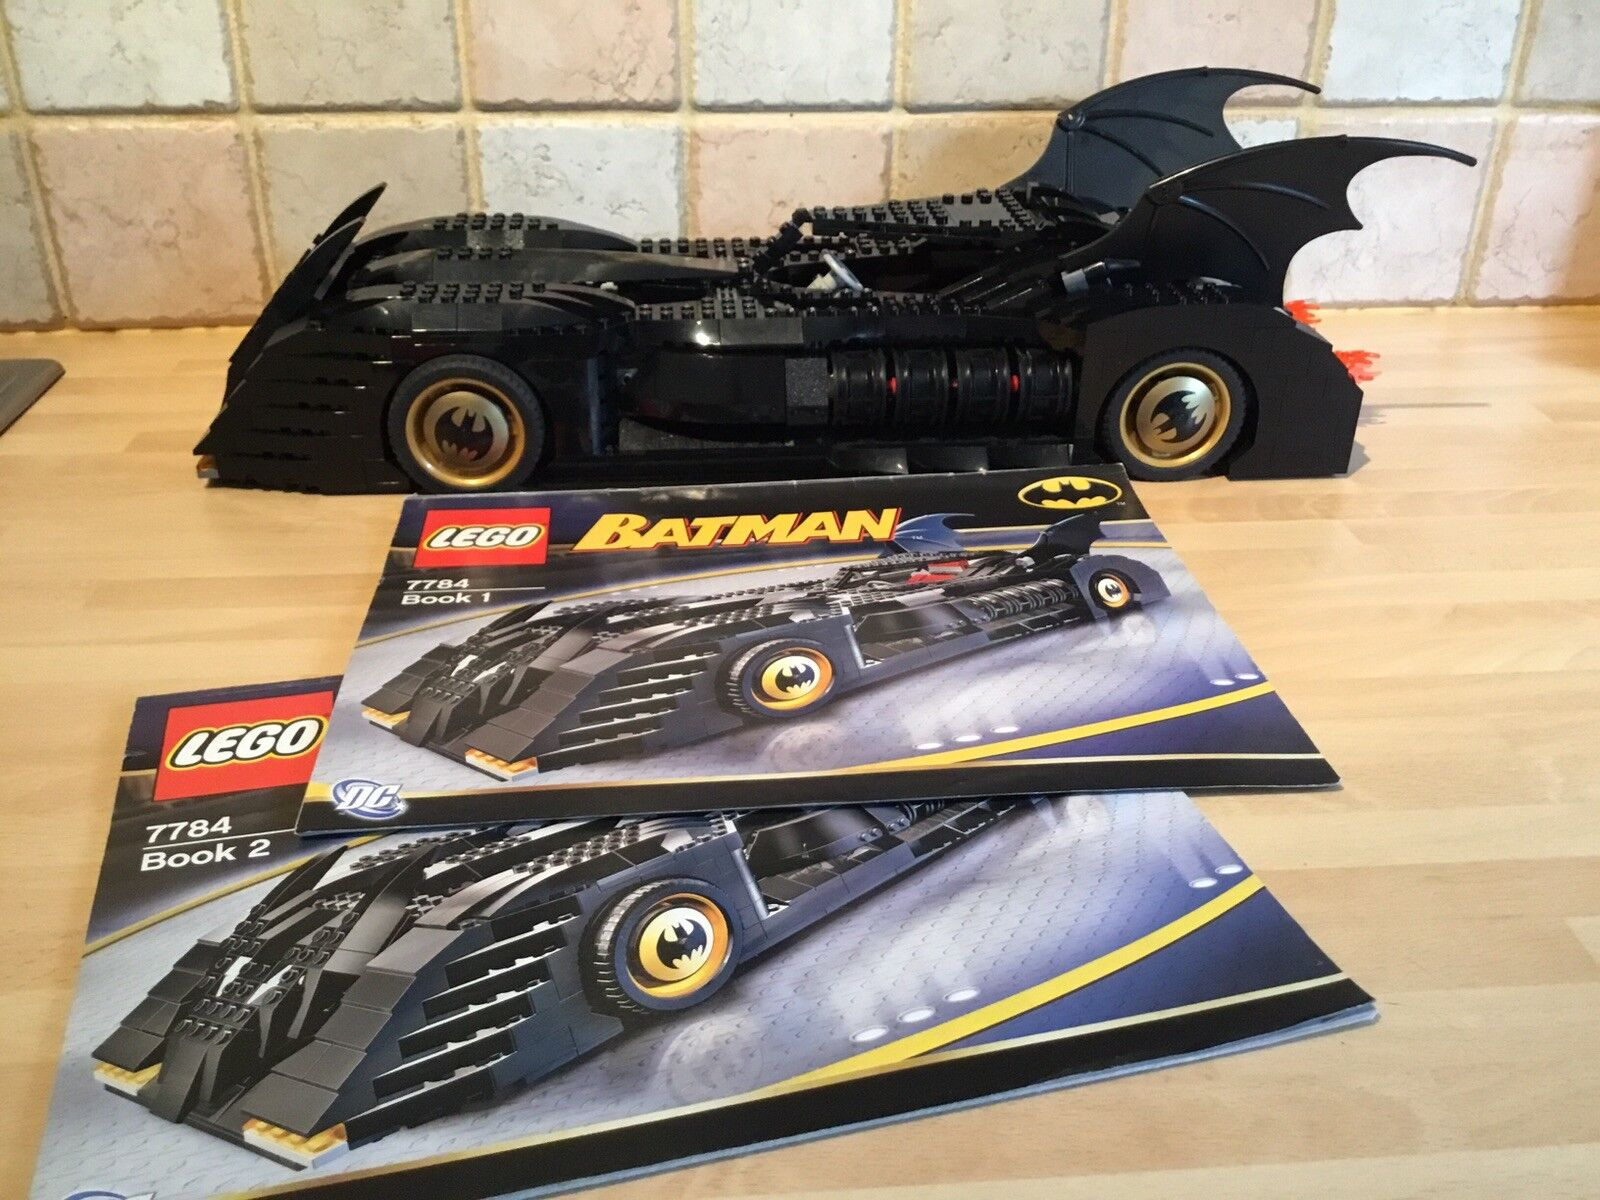 LEGO Batman Set 7784 - The Batmobile Ultimate Collectors' Edition